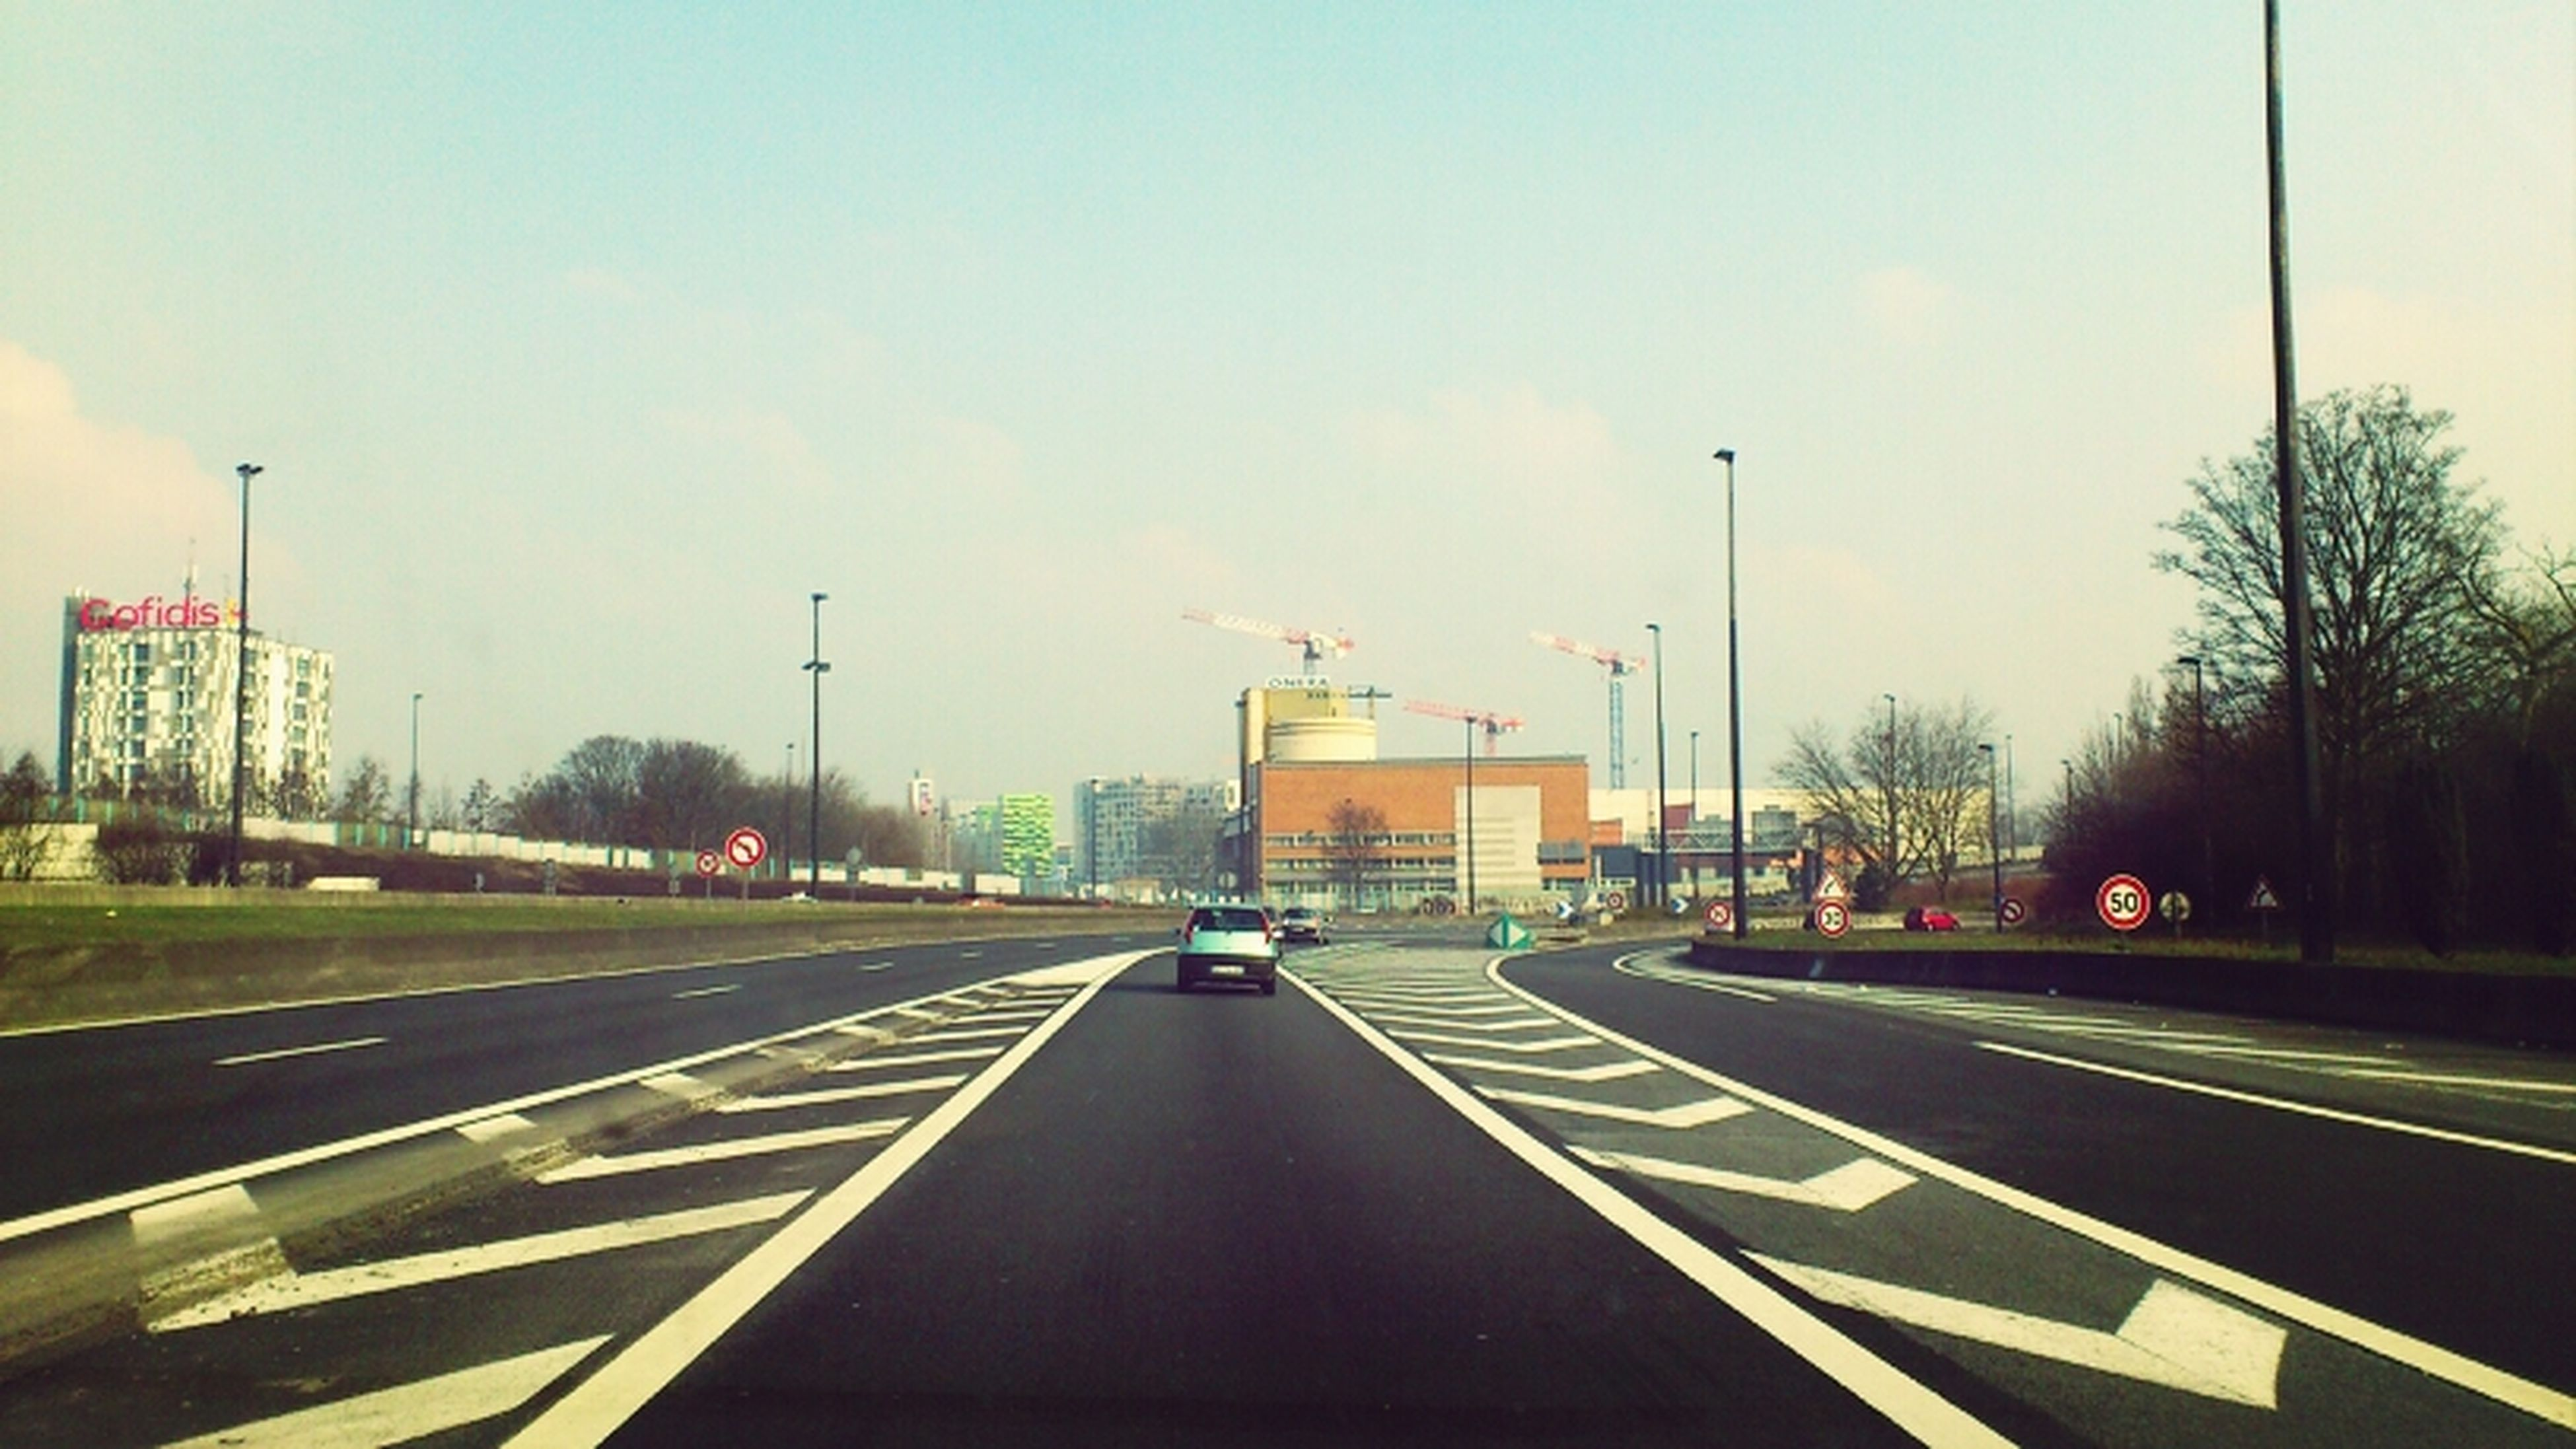 transportation, road, road marking, the way forward, car, sky, mode of transport, street light, diminishing perspective, land vehicle, street, vanishing point, on the move, cloud - sky, built structure, empty, tree, highway, travel, building exterior